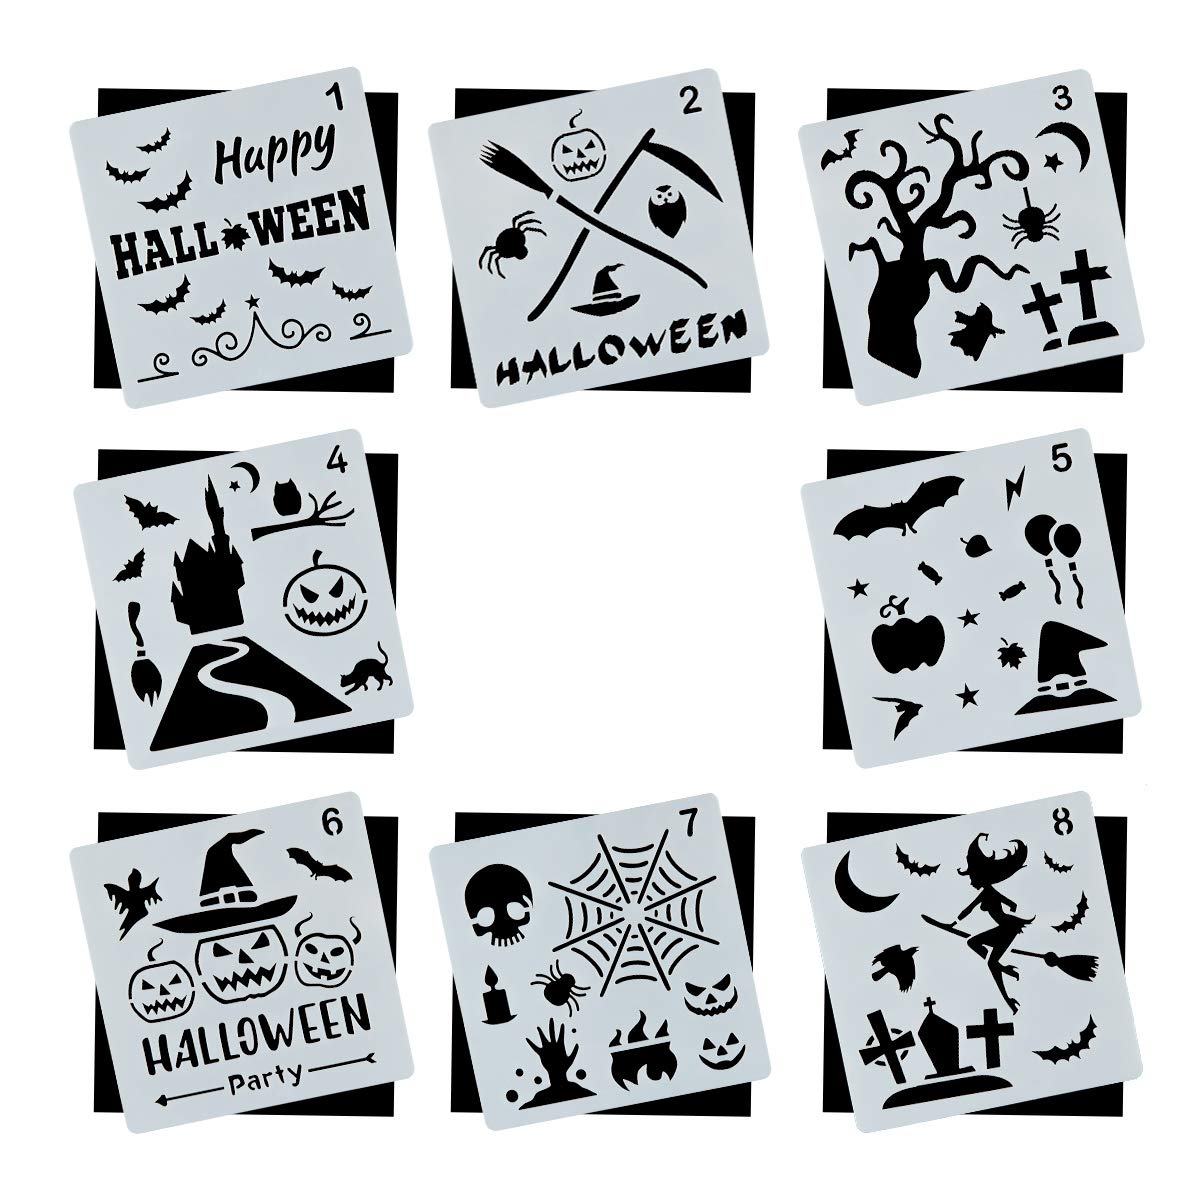 Halloween DIY Decorative Stencils Set of 8 Pack for Painting on Wood, Craft Cards Making, Human Body Painting, Home Decor Homtable